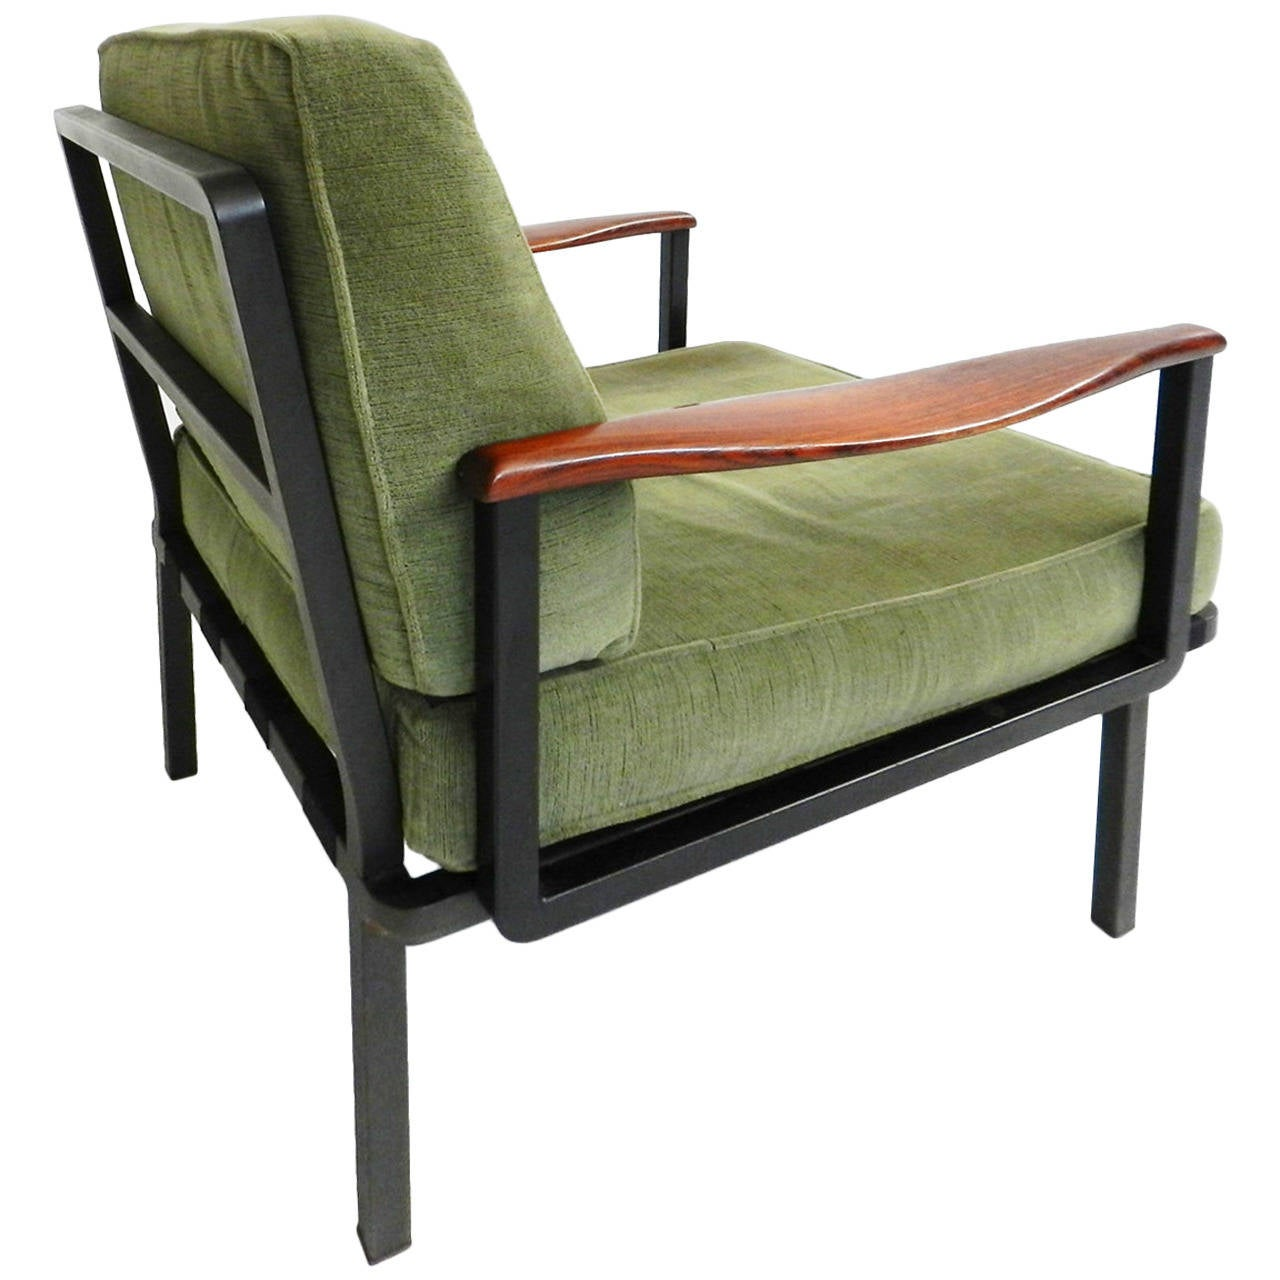 Osvaldo Borsani, Tecno Armchair Mod. P24 For Sale